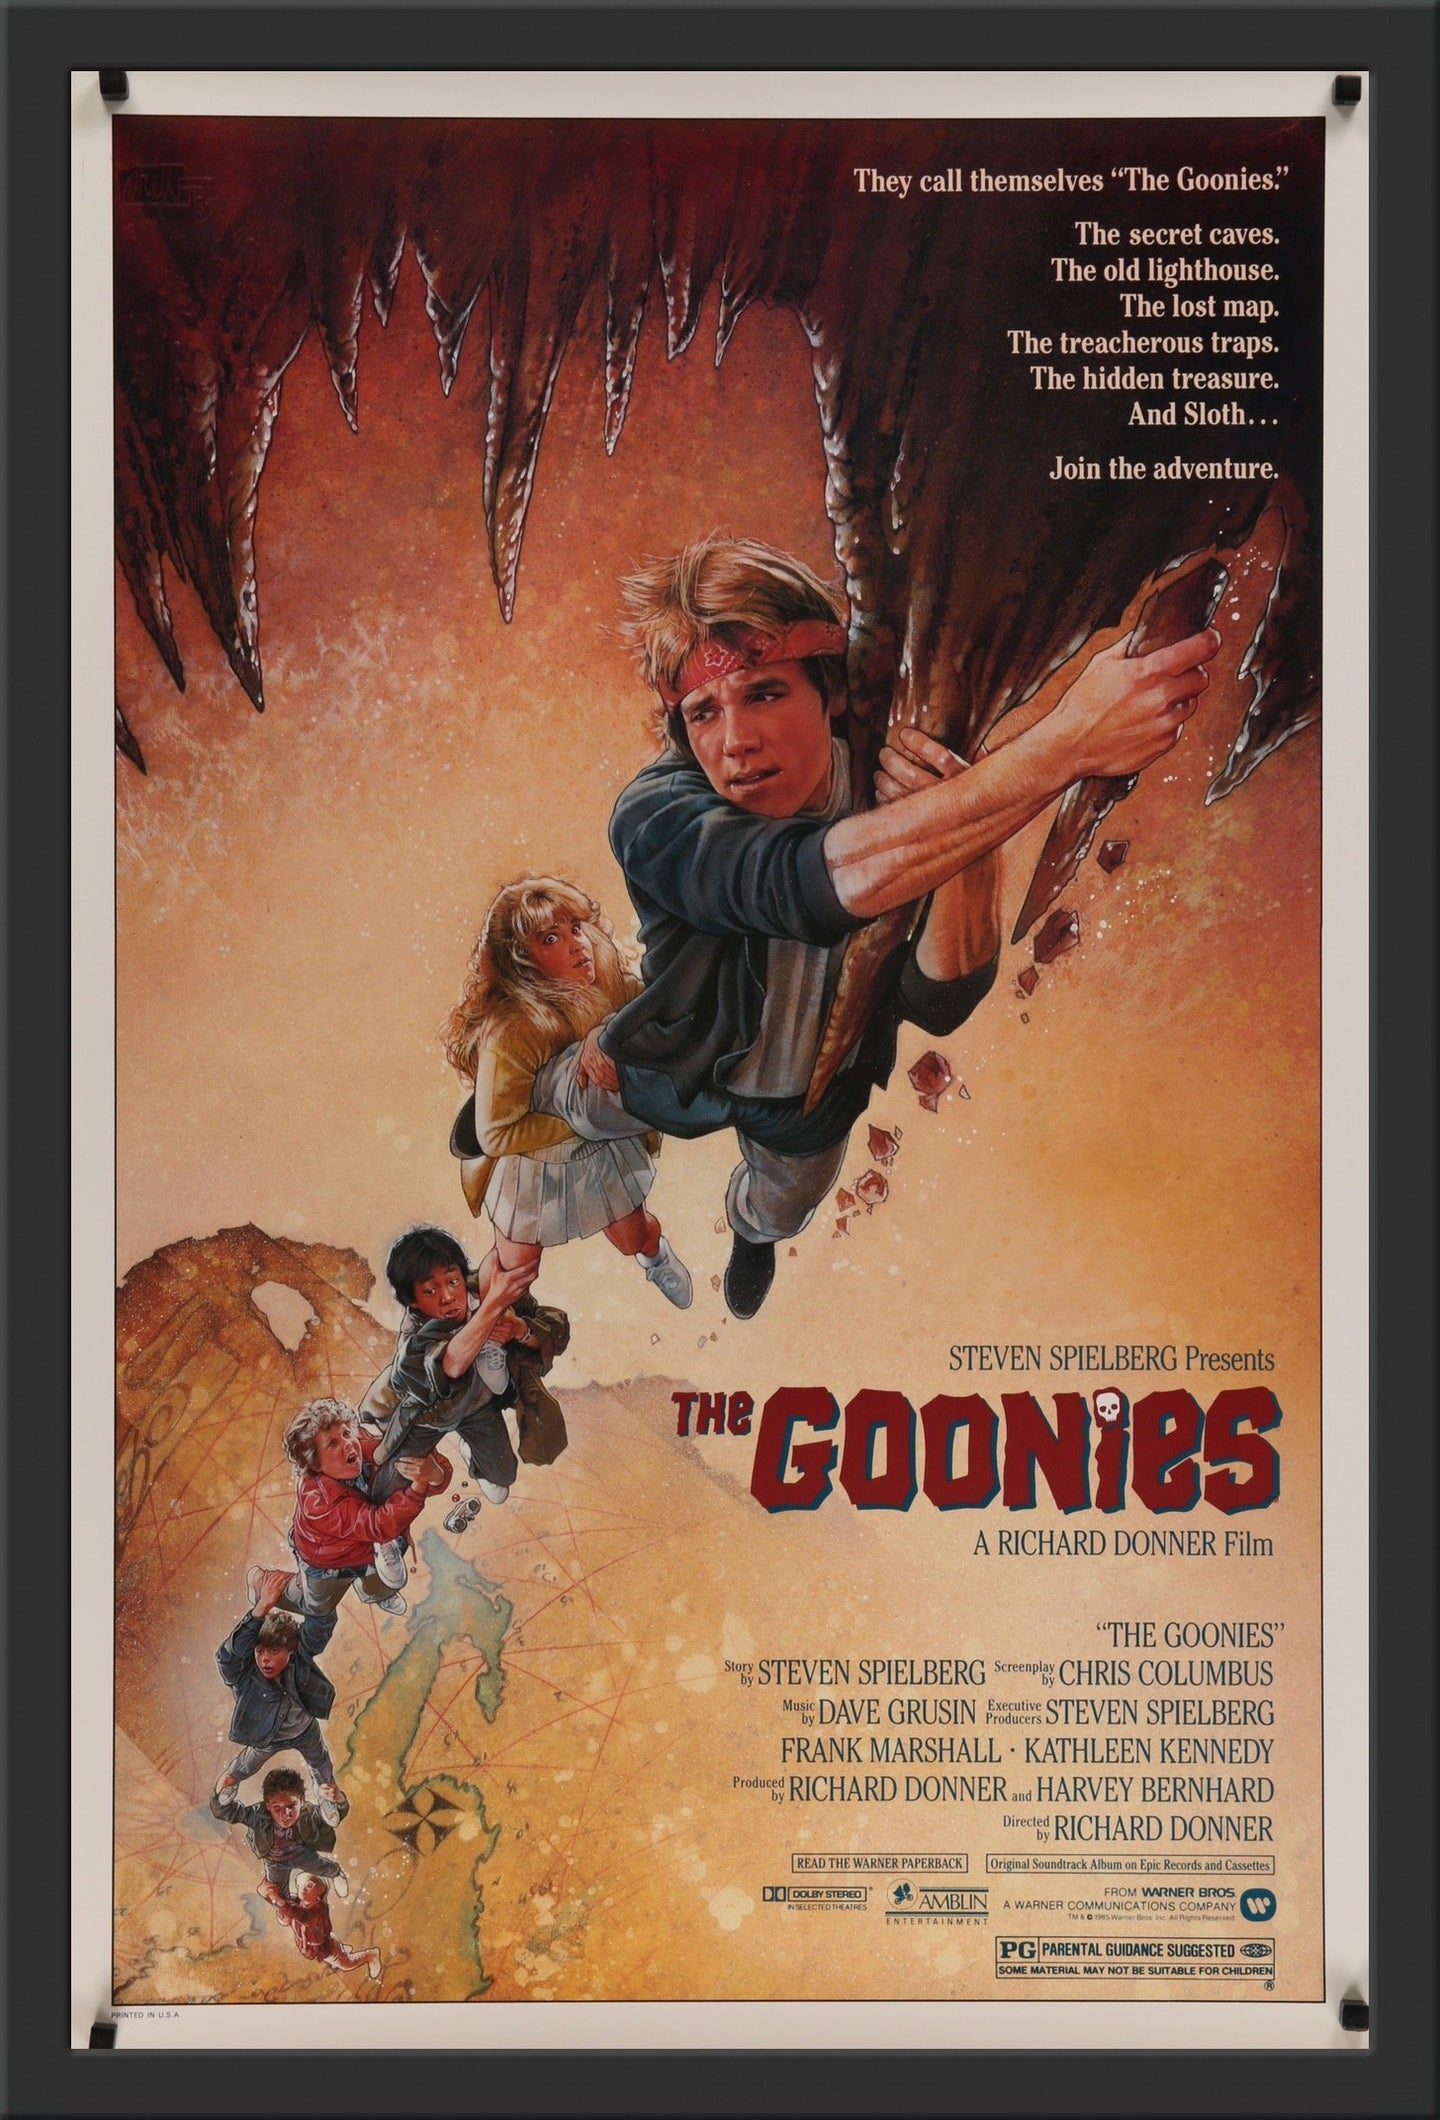 An original movie poster for the Steven Spielberg and Richard Donner film The Goonies